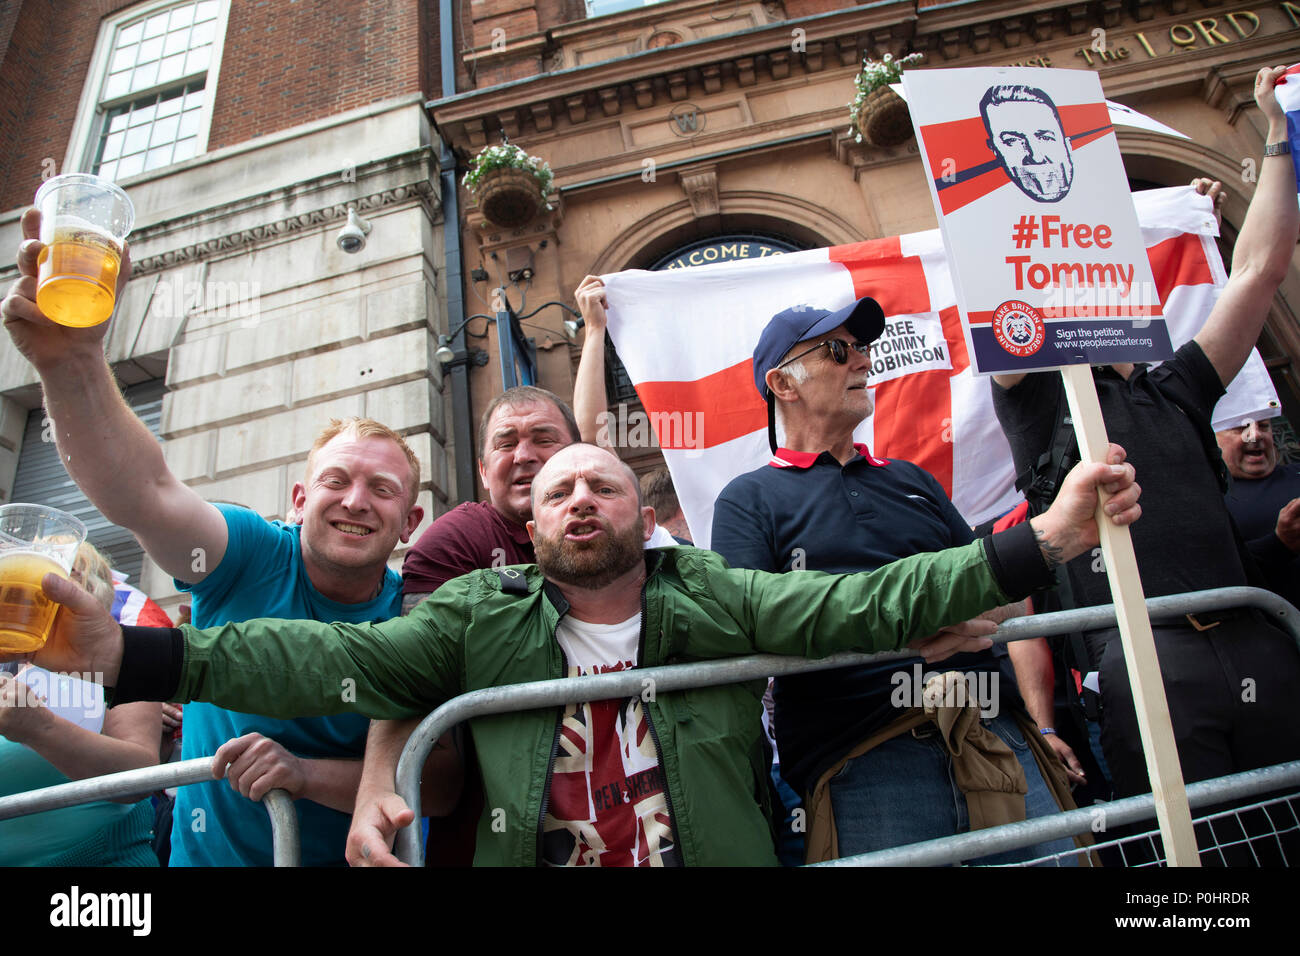 Demonstration calling for the release from jail of former English Defence League, EDL, leader Tommy Robinson on June 9th 2018 in London, England, United Kingdom. Far right groups gathered shouting Free Tommy Robinson, blaming the police for his arrest and calling for free speech. Opposition groups gathered nearby. Credit: Michael Kemp/Alamy Live News - Stock Image